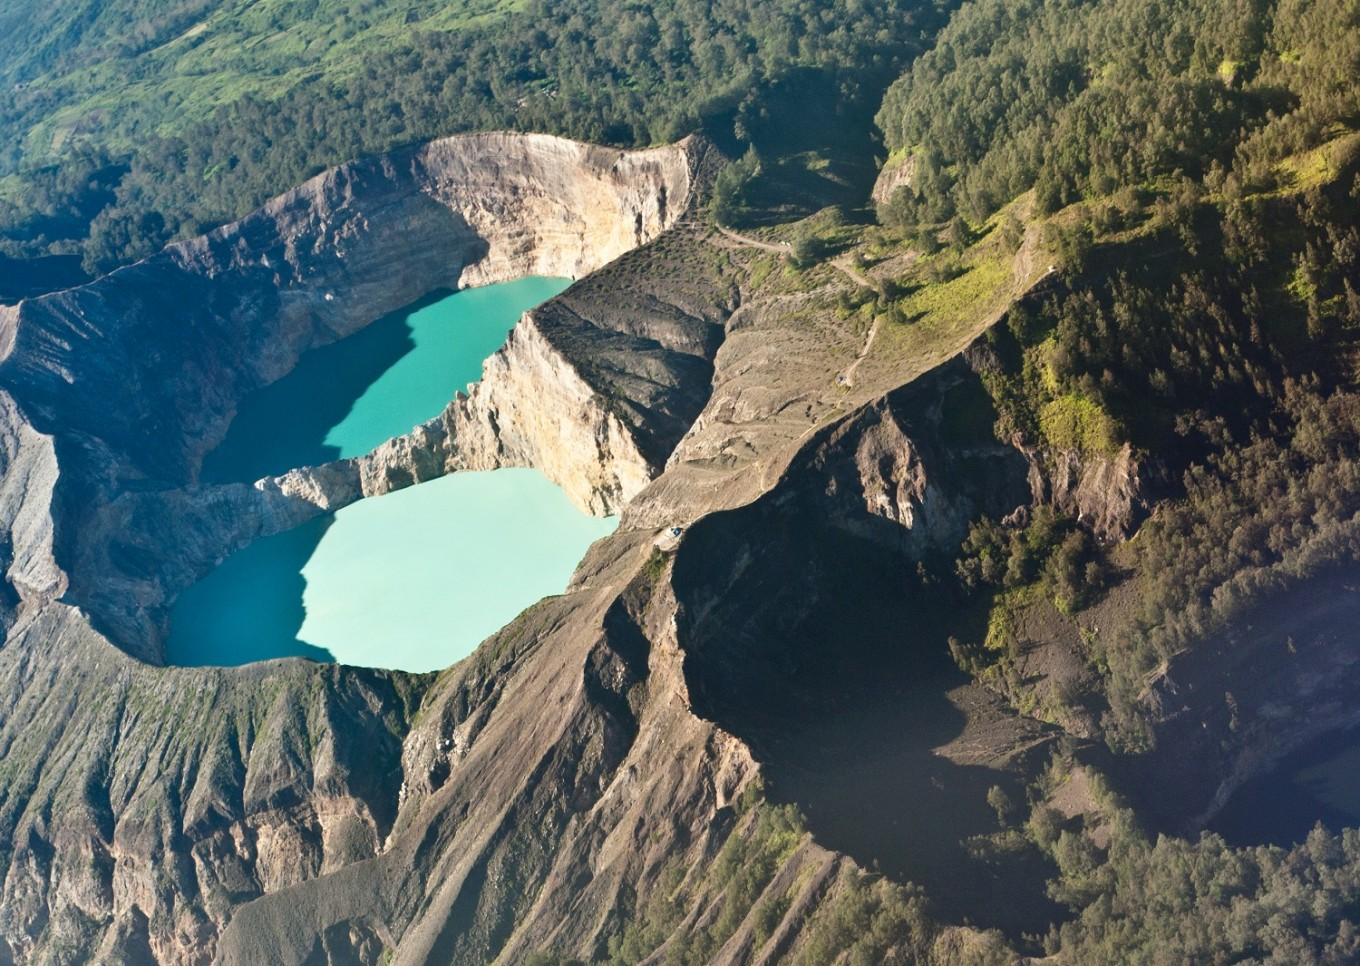 how to get to kelimutu national park